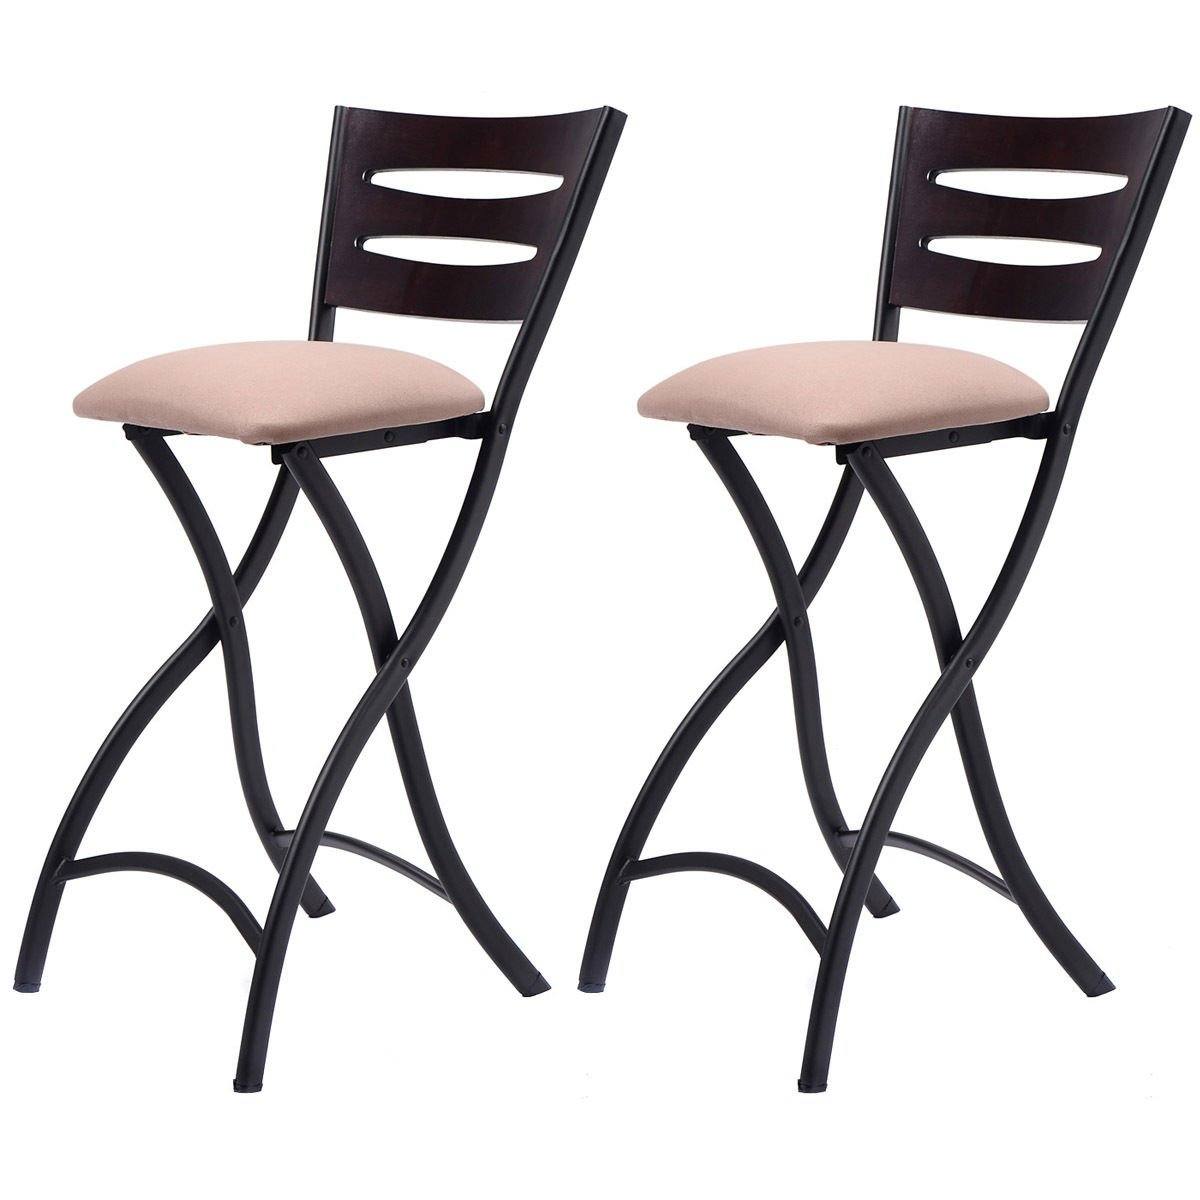 Amazon.com Costway Set of 2 Folding Bar Stools Counter Height Bistro Dining Kitchen Pub Chair Kitchen u0026 Dining  sc 1 st  Amazon.com : kitchen bar stools counter height - islam-shia.org